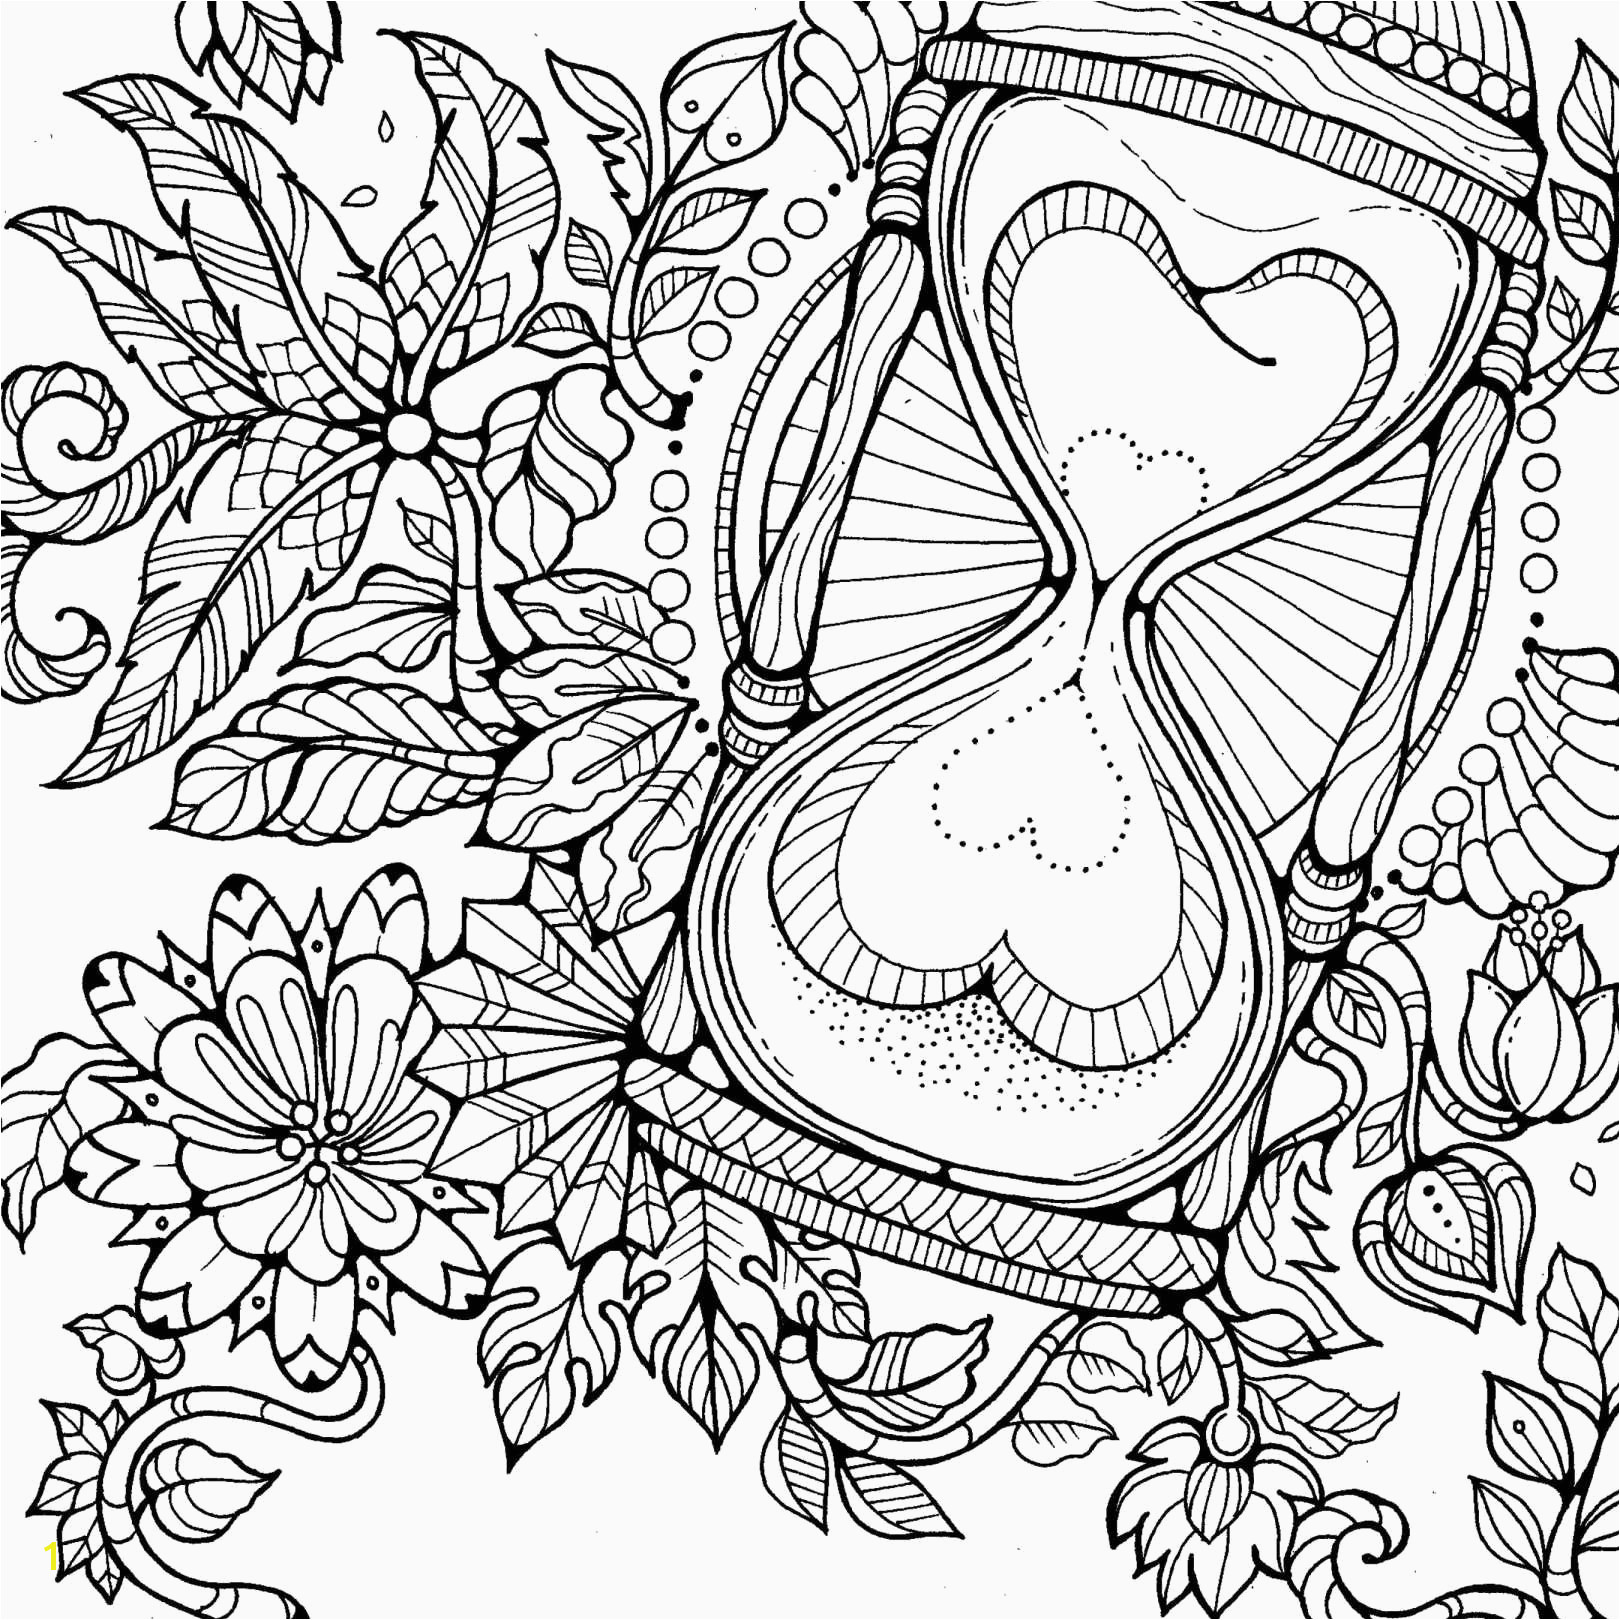 Nativity Scene Fresh Printable Nativity Scene Coloring Pages for Kids – Free Coloring Sheets